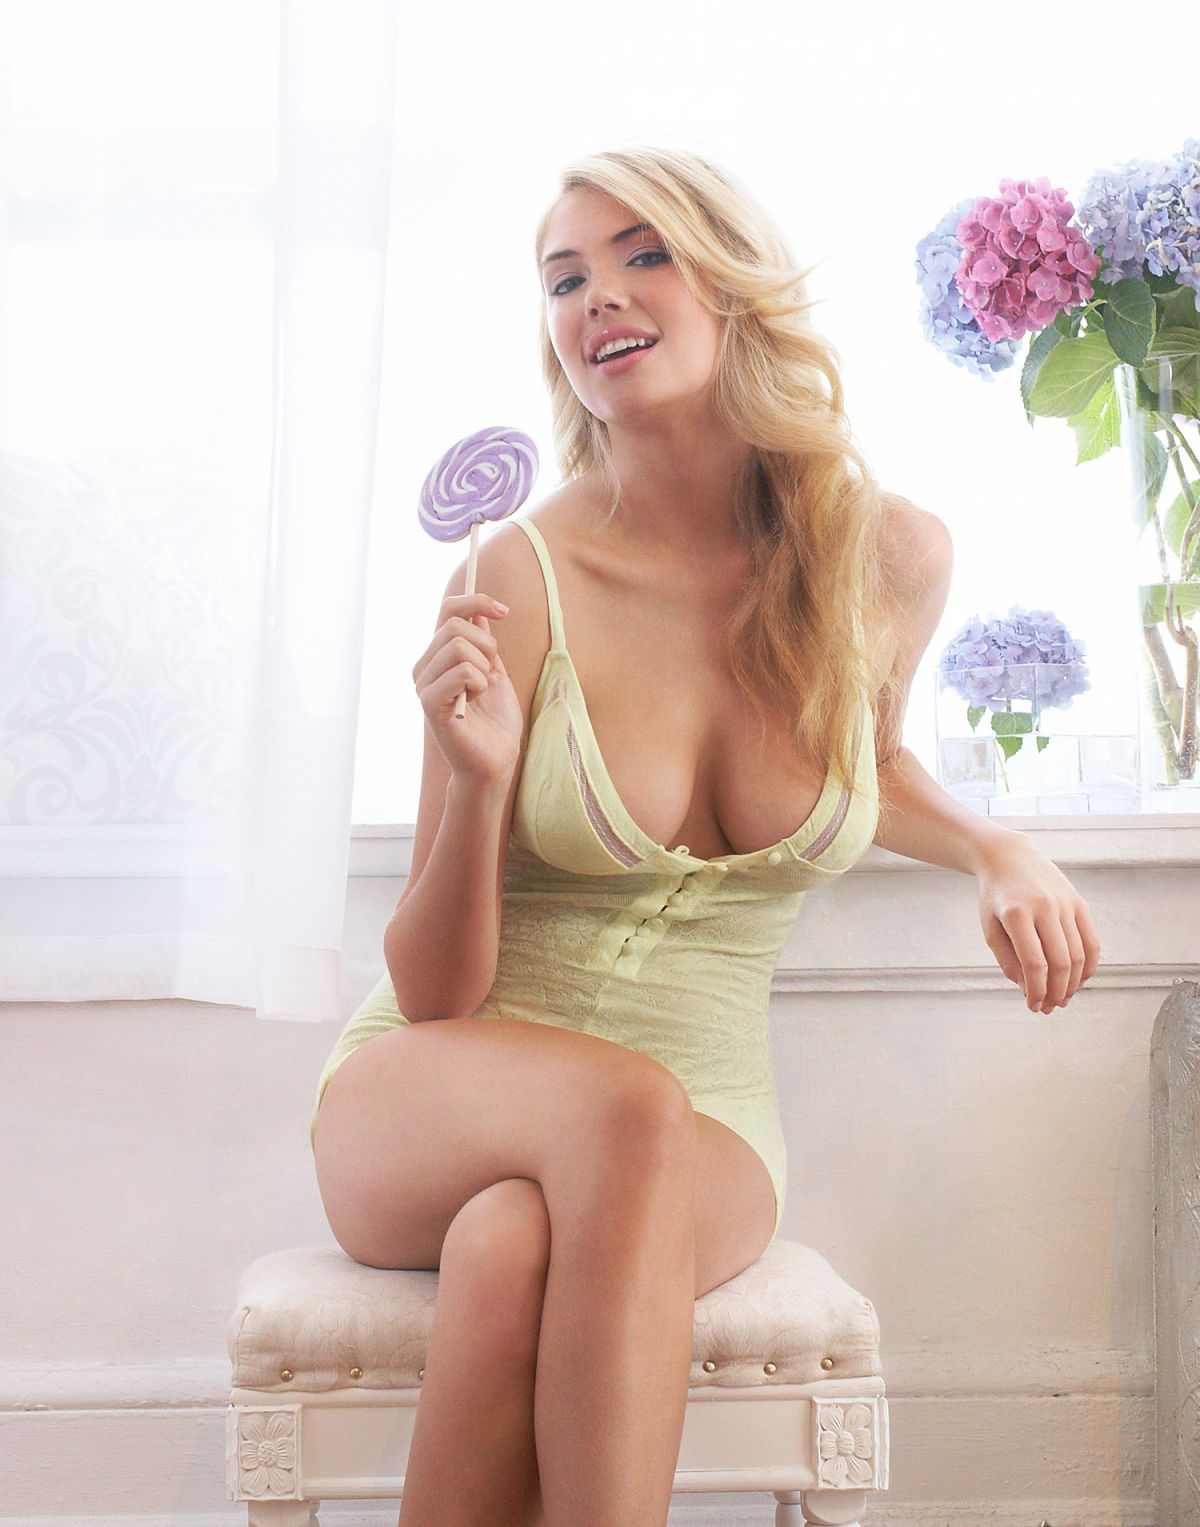 j leigh lingerie KATE UPTON – Jenna Leigh Lingerie 2014 Collection